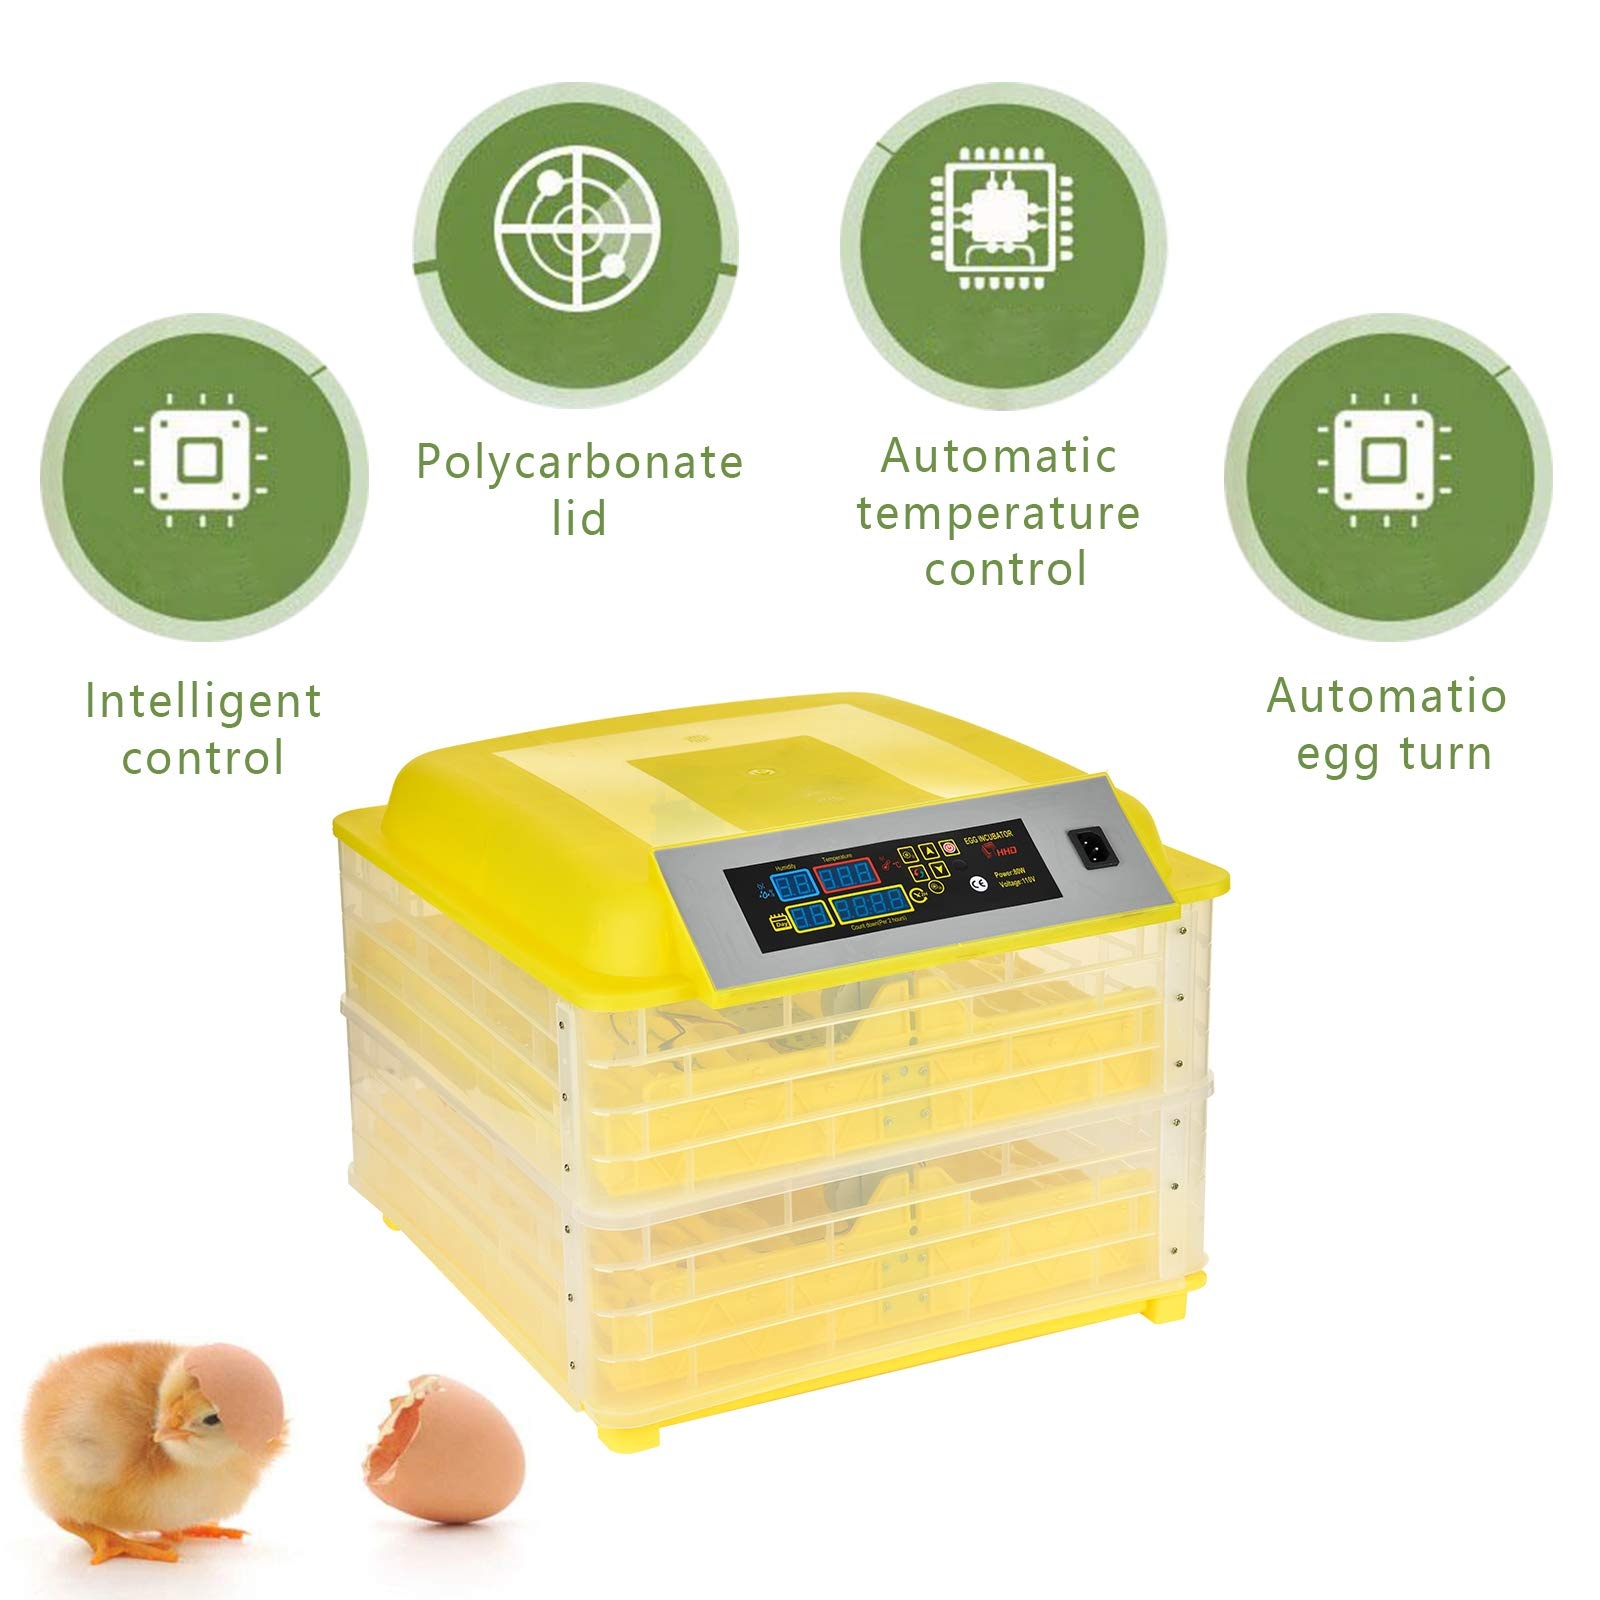 SUNCOO Digital 96 Egg Incubator Hatcher Large with Automatic Egg Turning Temperature and Humidity Control for Chicken, Poultry Hatching for Chickens Ducks Goose Birds Turkey W/Three Output Channels